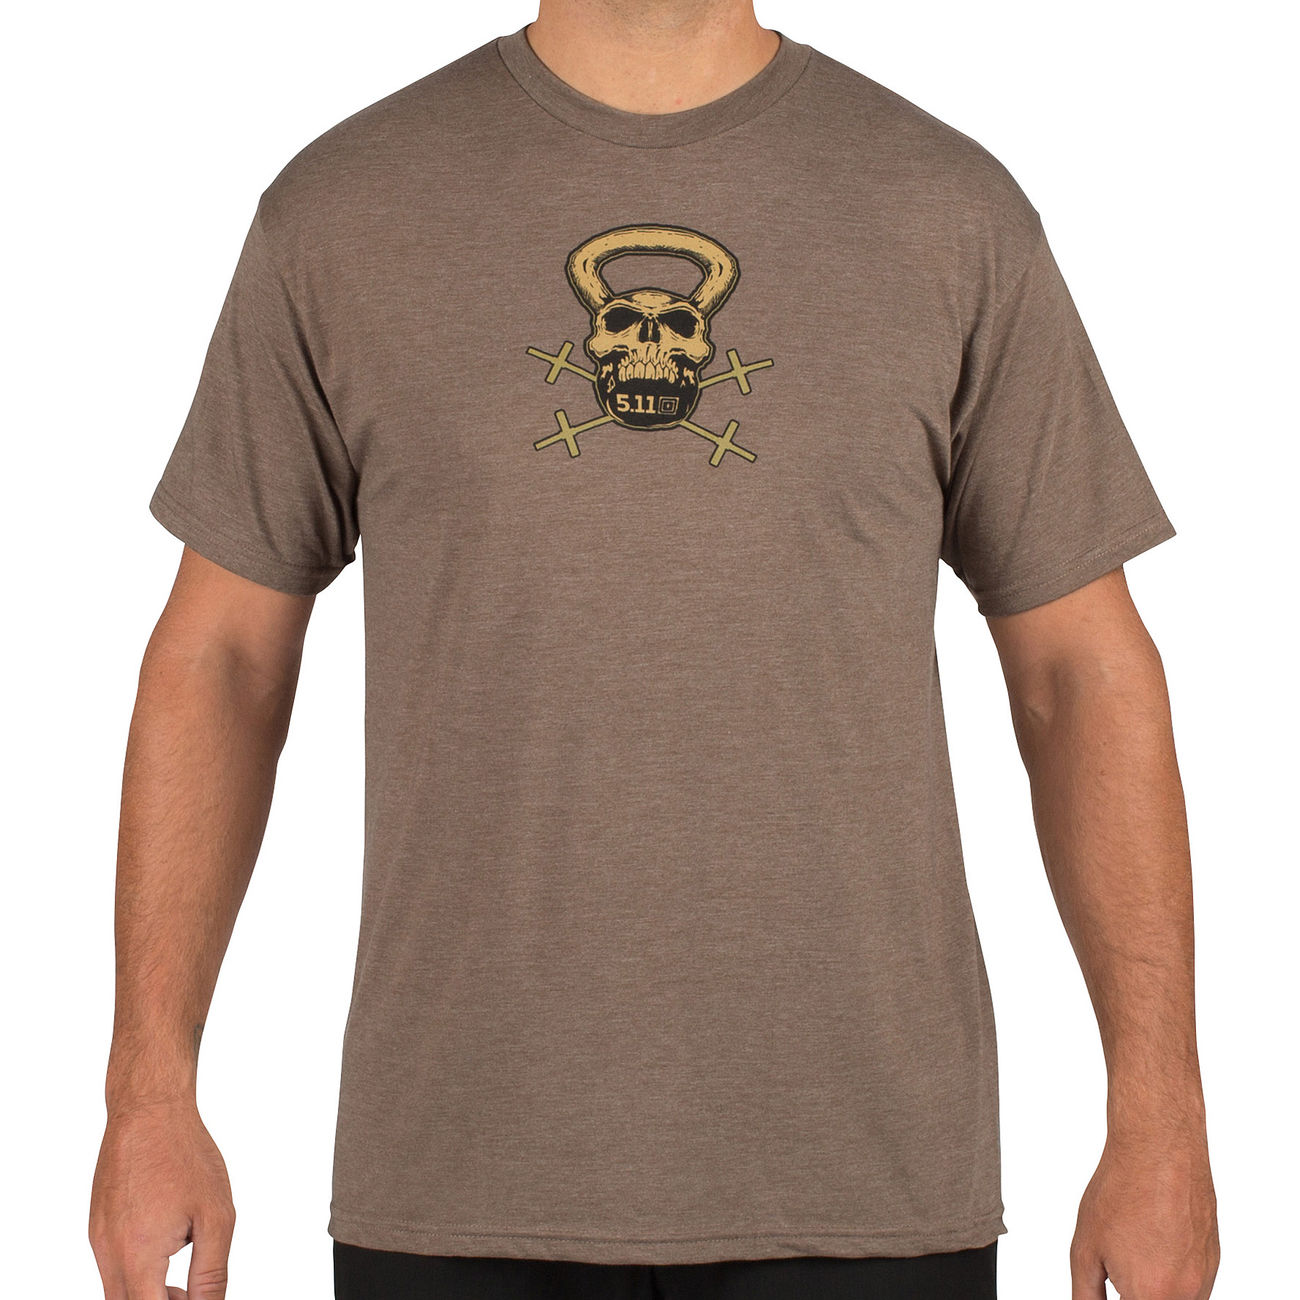 5.11 T-Shirt Recon Skull Kettle brown heather 0